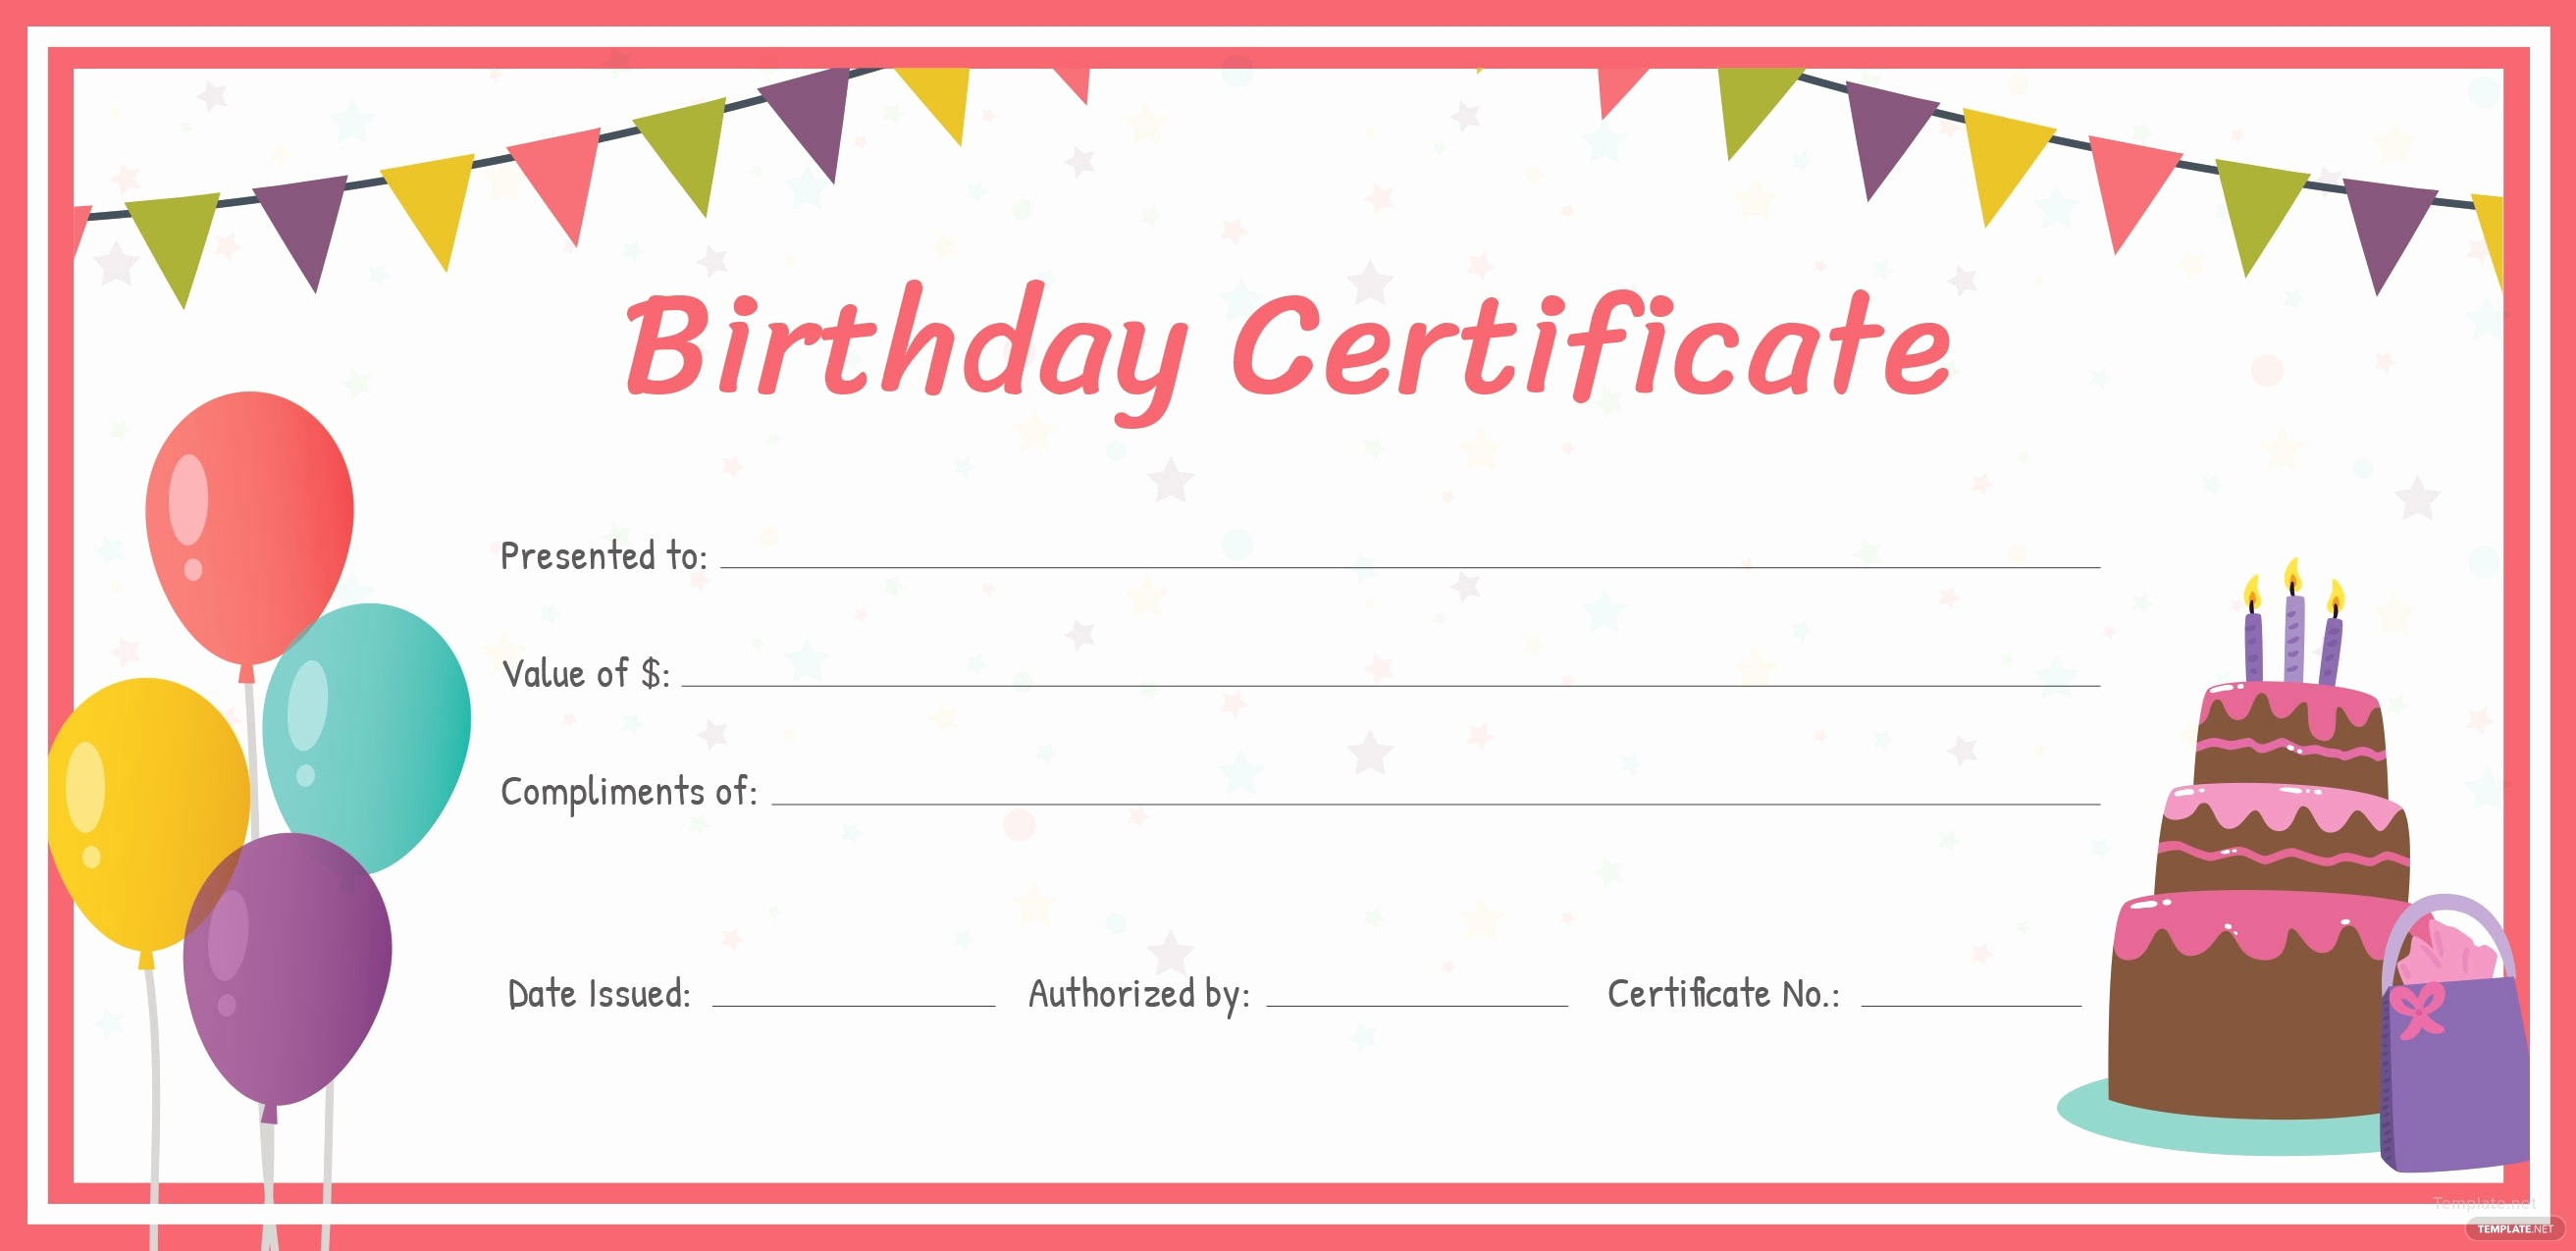 Make Up Gift Certificate Template Inspirational Free Birthday Gift Certificate Template In Adobe